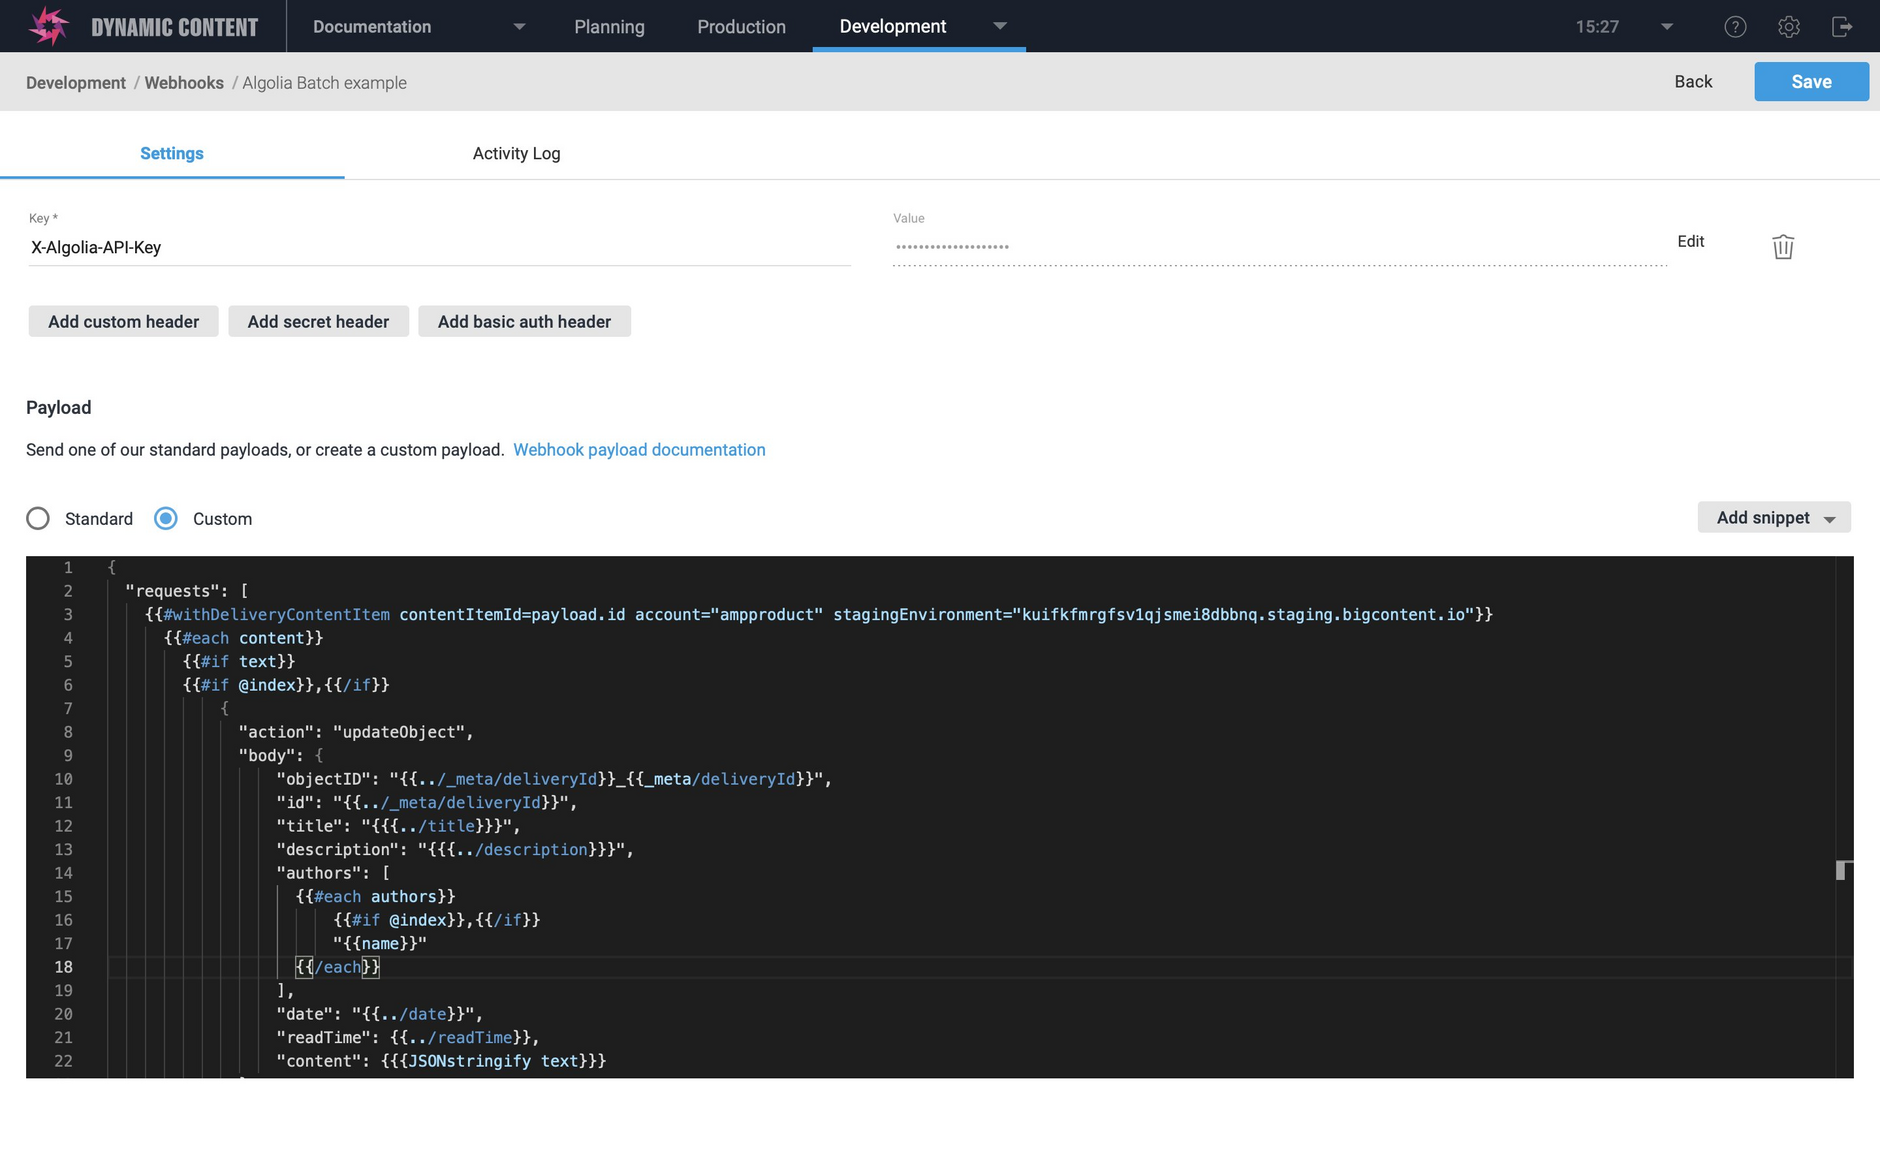 The custom payload to create Algolia records from all blog post linked content